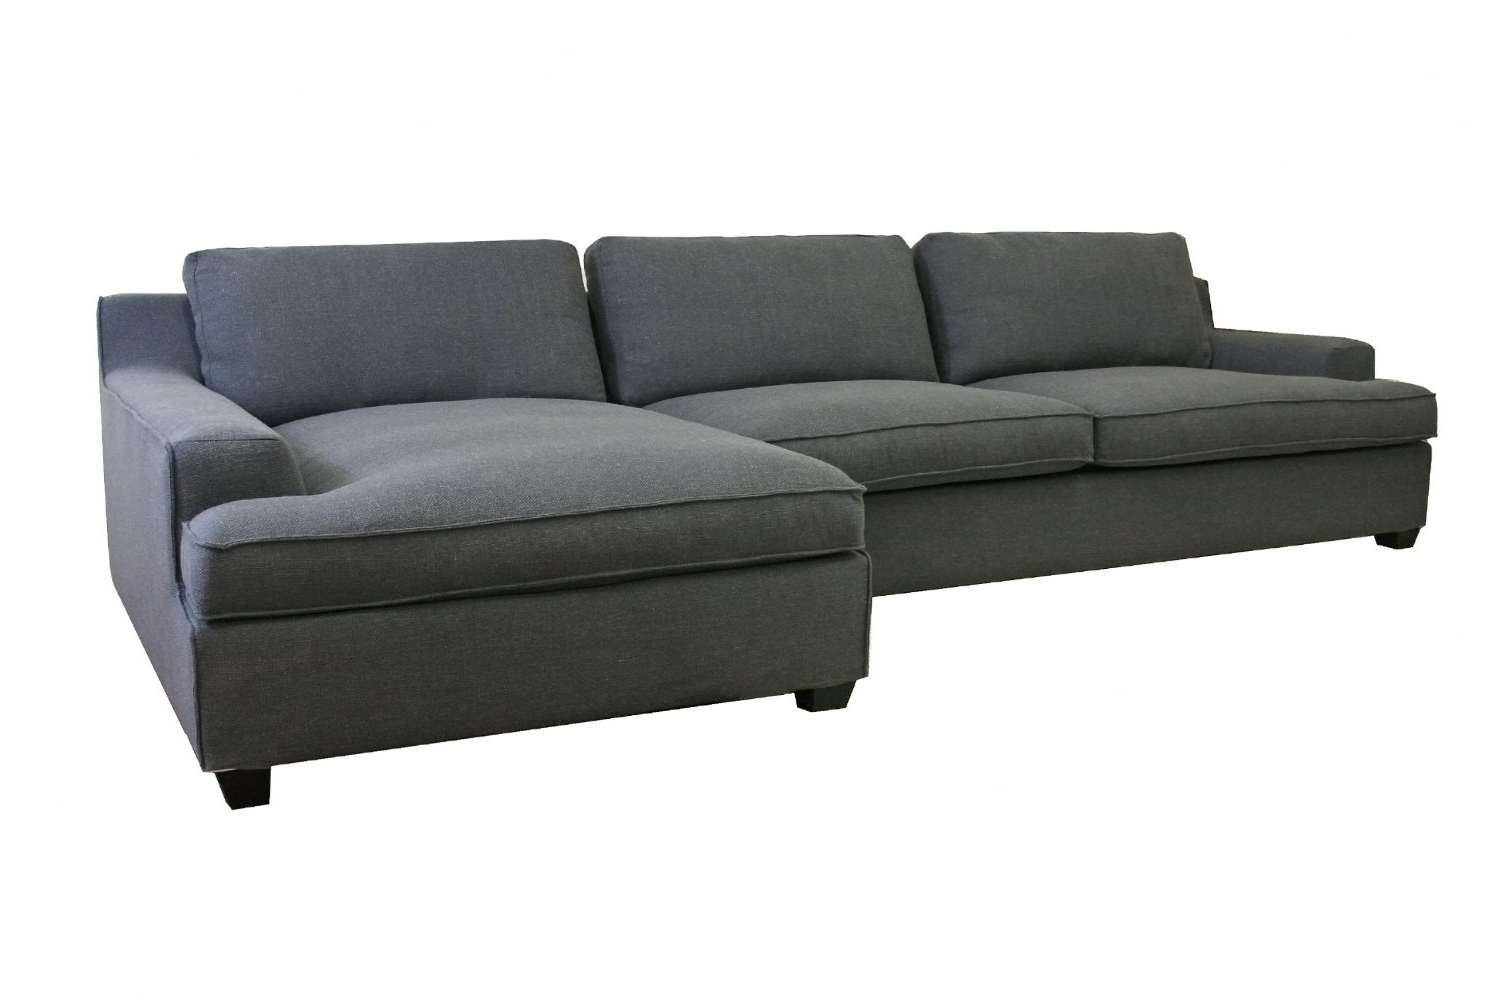 Couches With Chaise In Best And Newest Awesome Couch With Chaise Lounge 81 On Sofas And Couches Ideas (View 5 of 15)